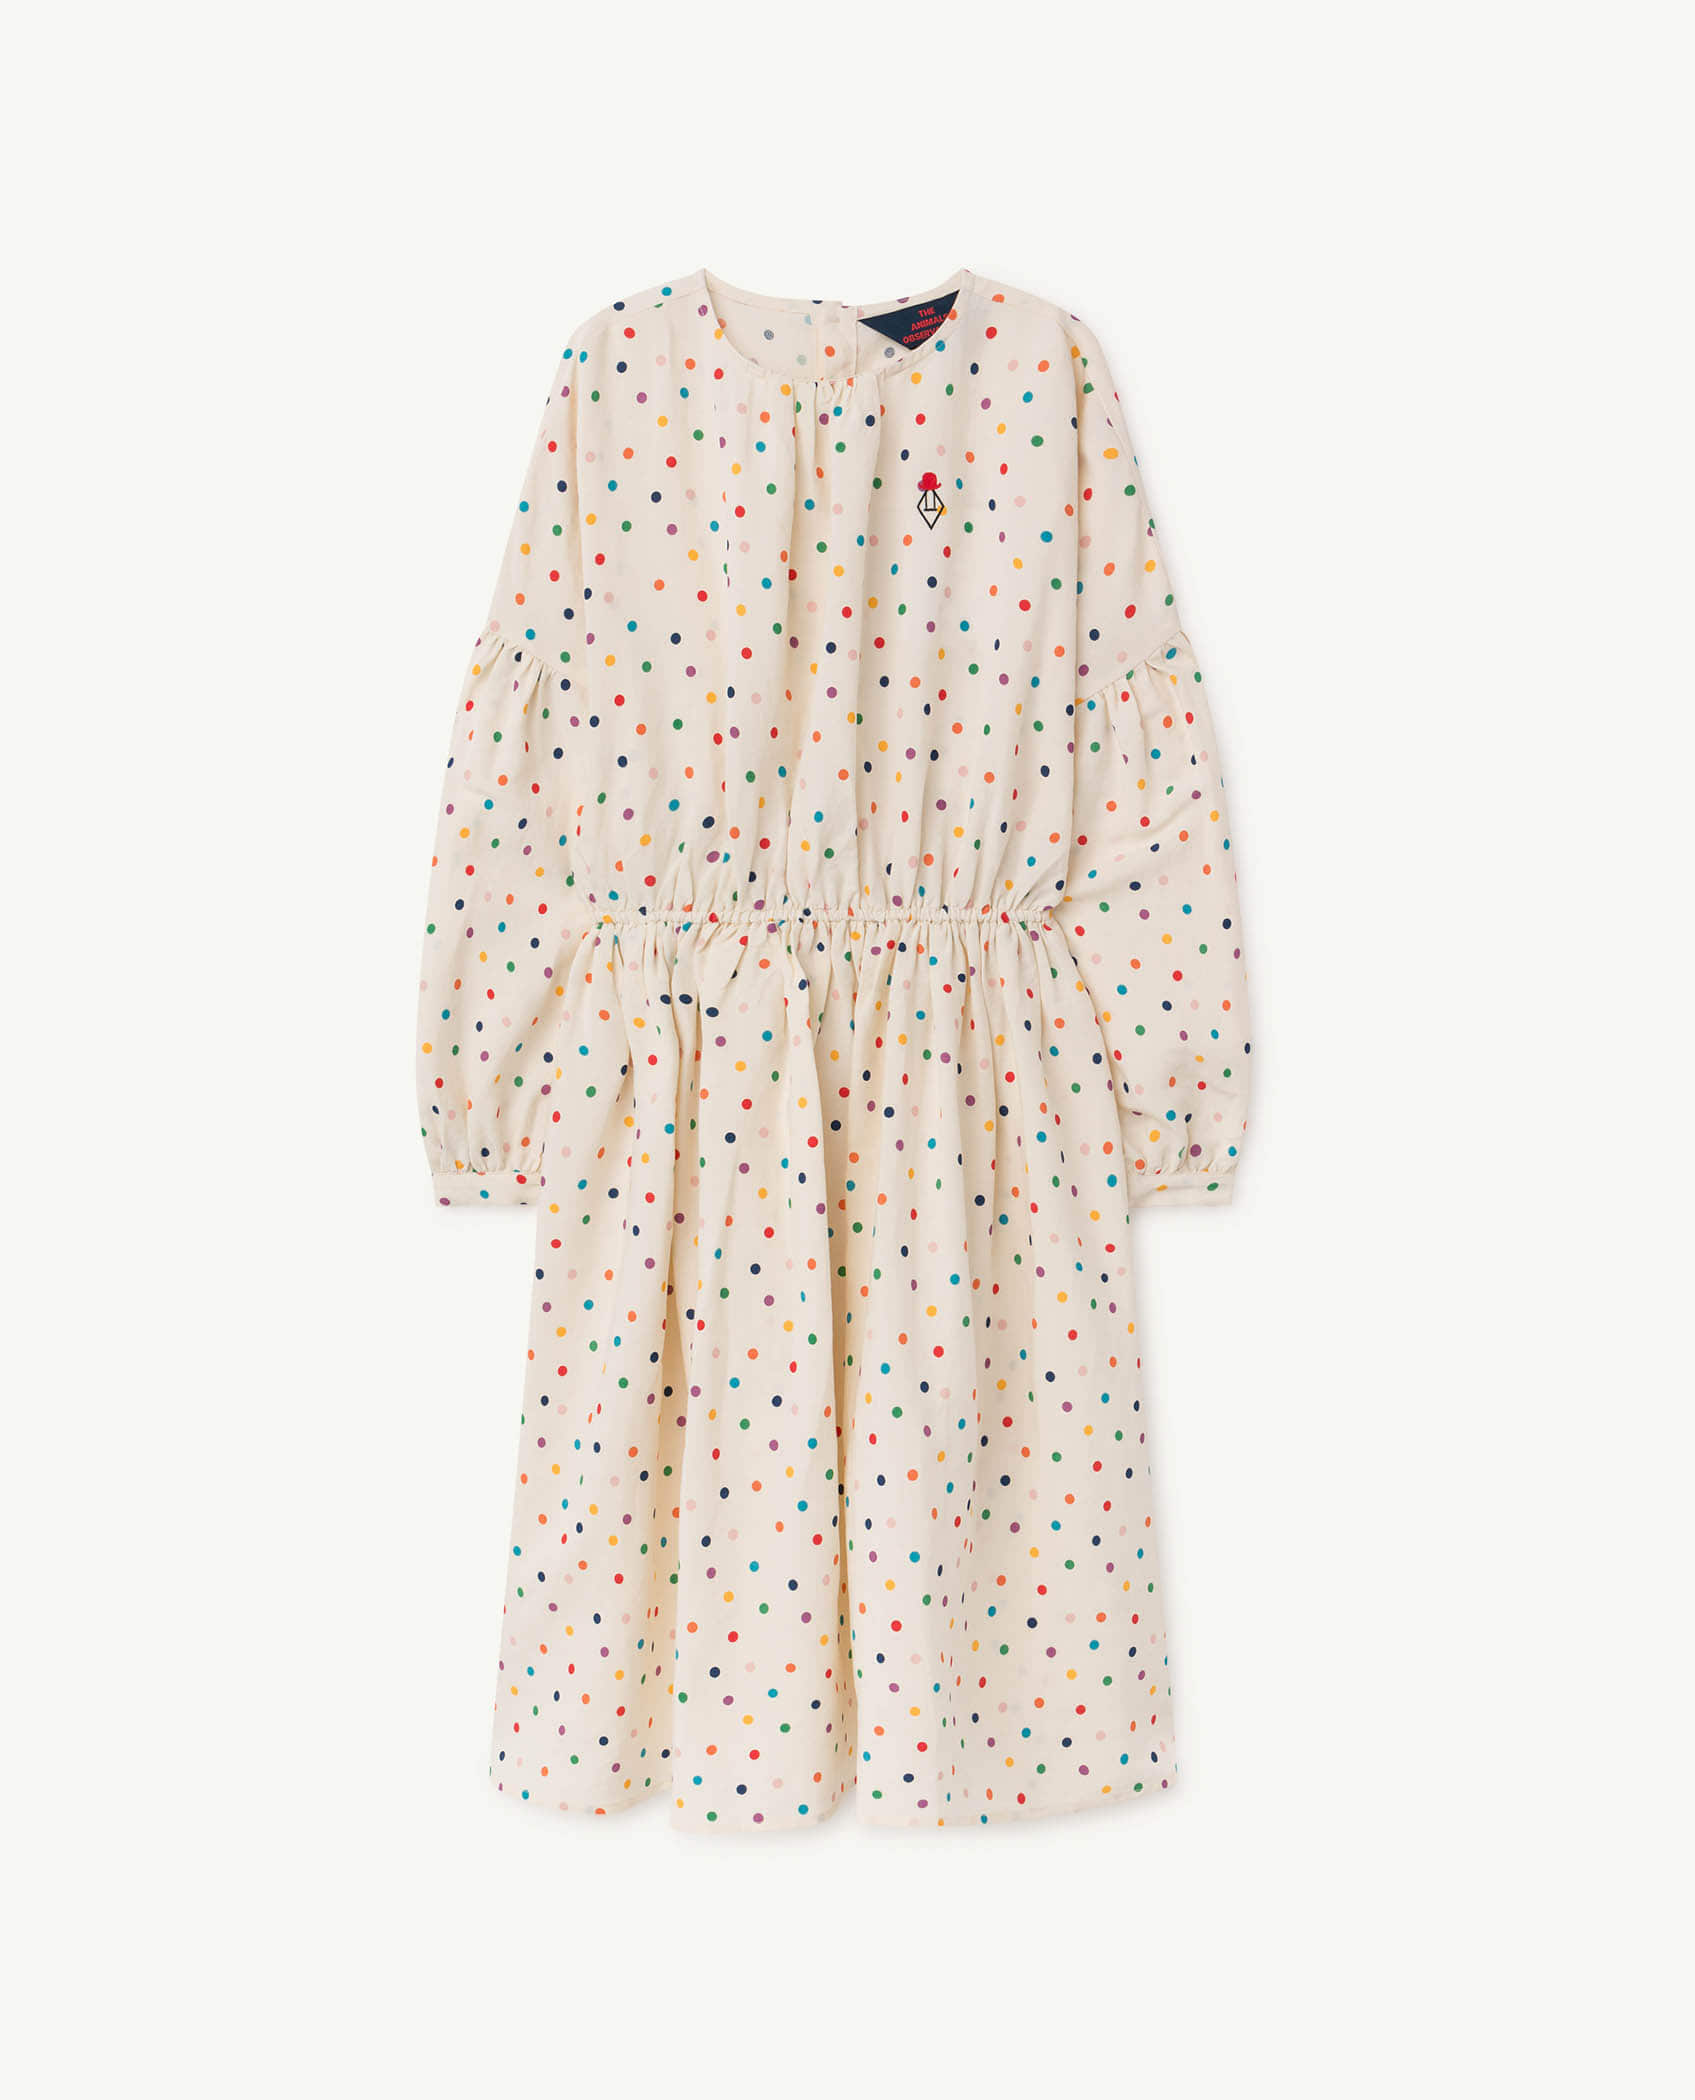 [T.A.O] DOTS TORTOISE KIDS DRESS _ WHITE [4Y, 12Y]